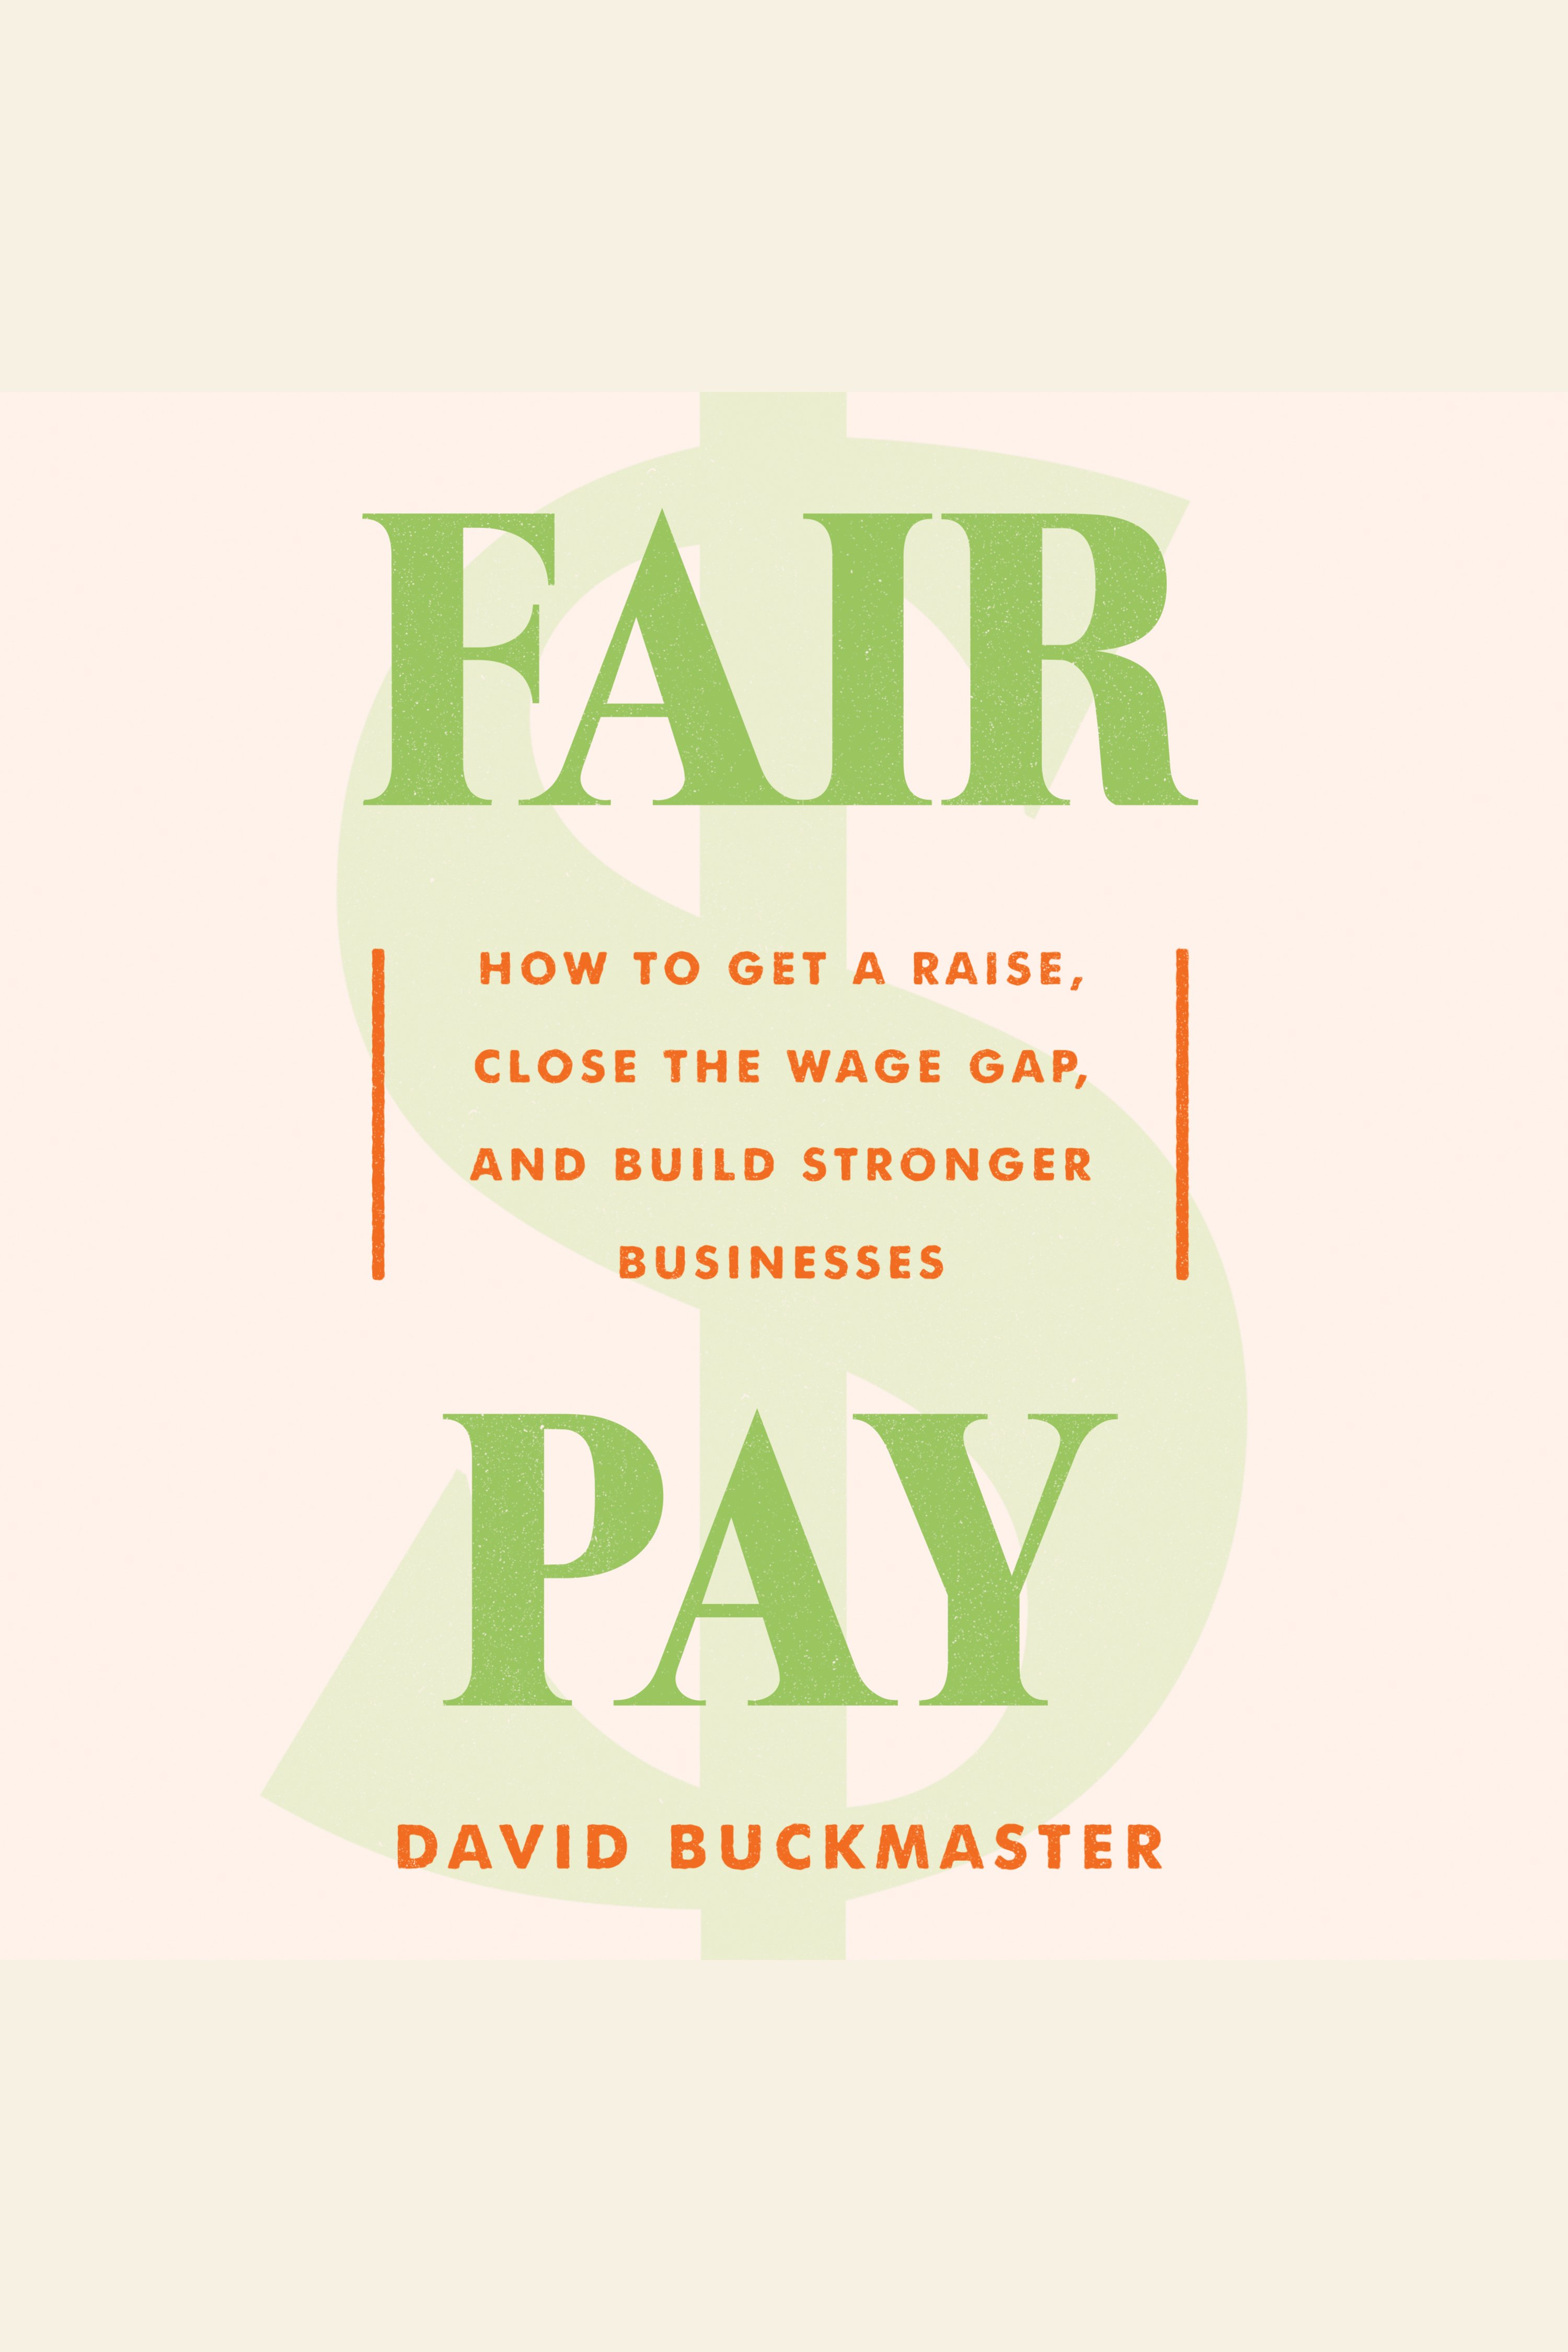 Fair Pay How to Get a Raise, Close the Wage Gap, and Build Stronger Businesses